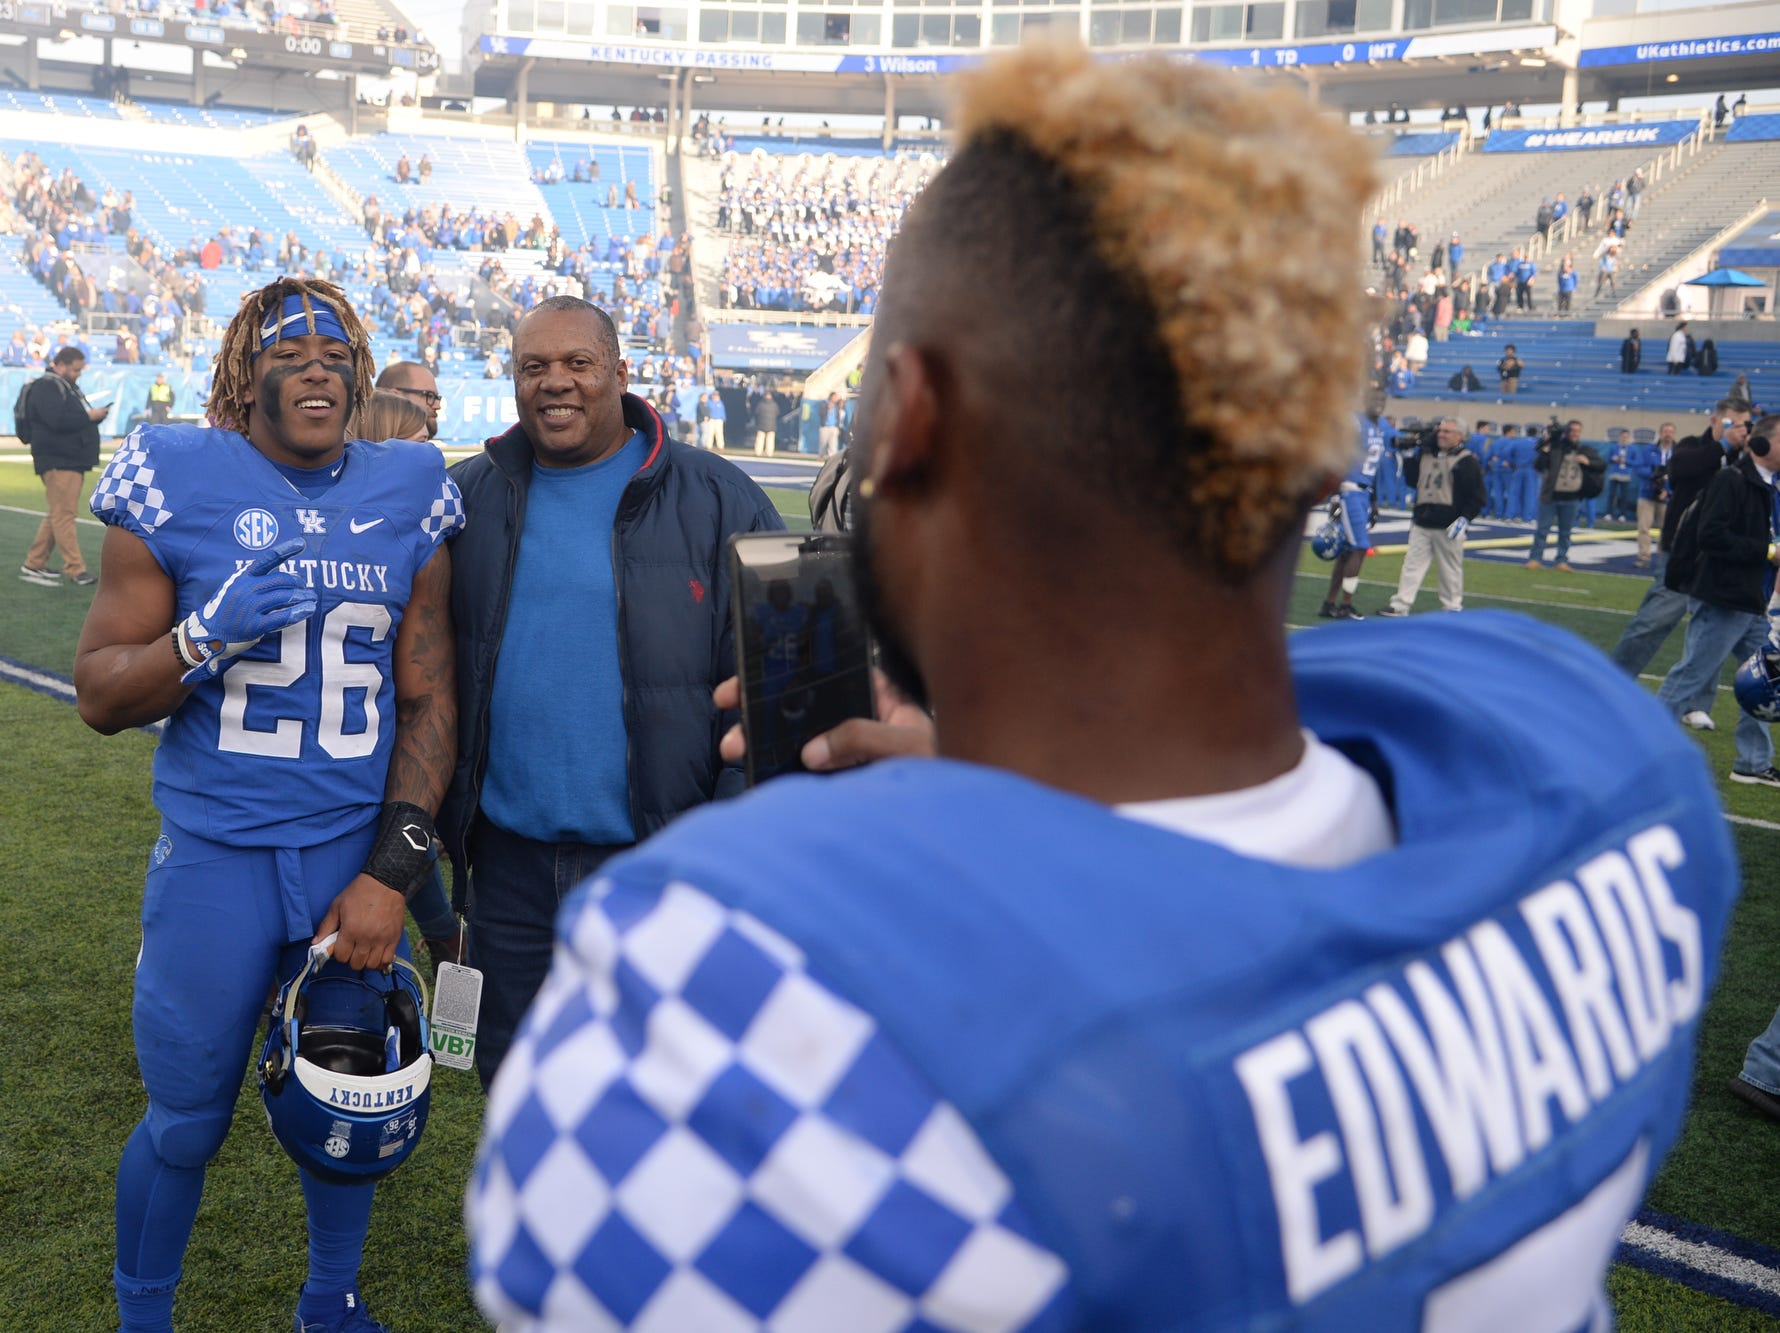 UK RB Benny Snell Jr., has his photo taken by SS Mike Edwards after the University of Kentucky football game against Middle Tennessee at Kroger Field in Lexington, Kentucky on Saturday, November 17, 2018.